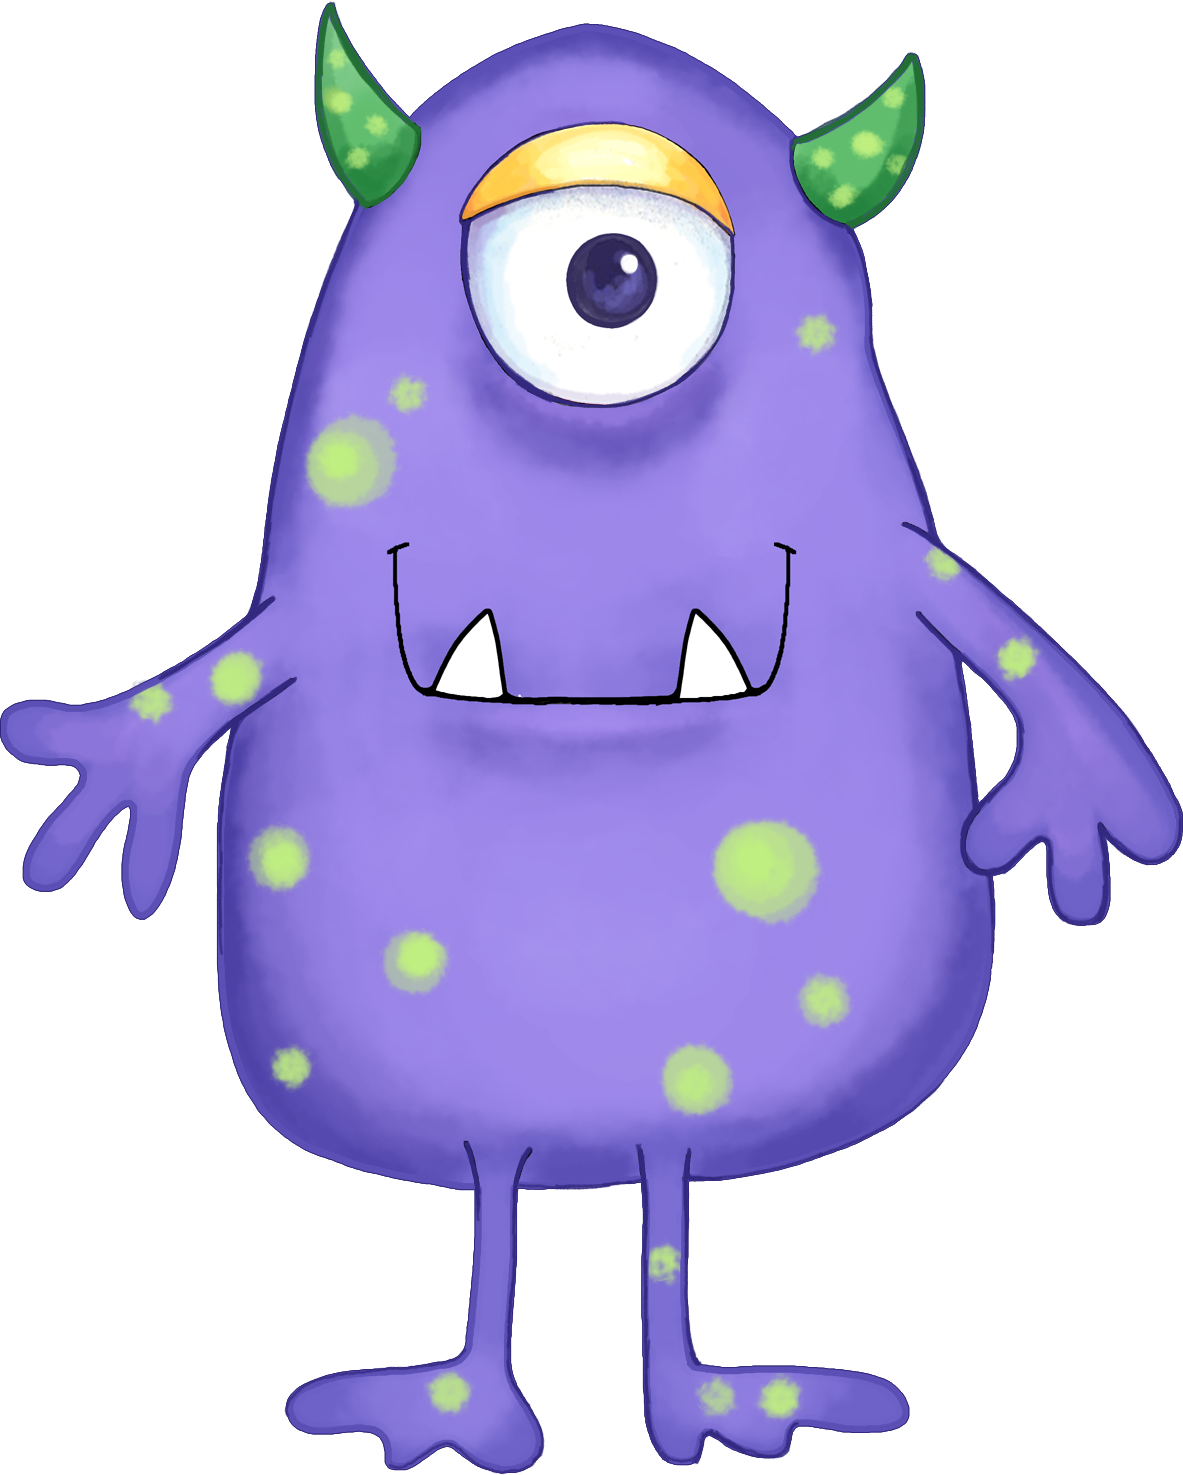 1183x1475 Your Free Art Cute Blue, Purple And Green Cartoon Alien Monsters